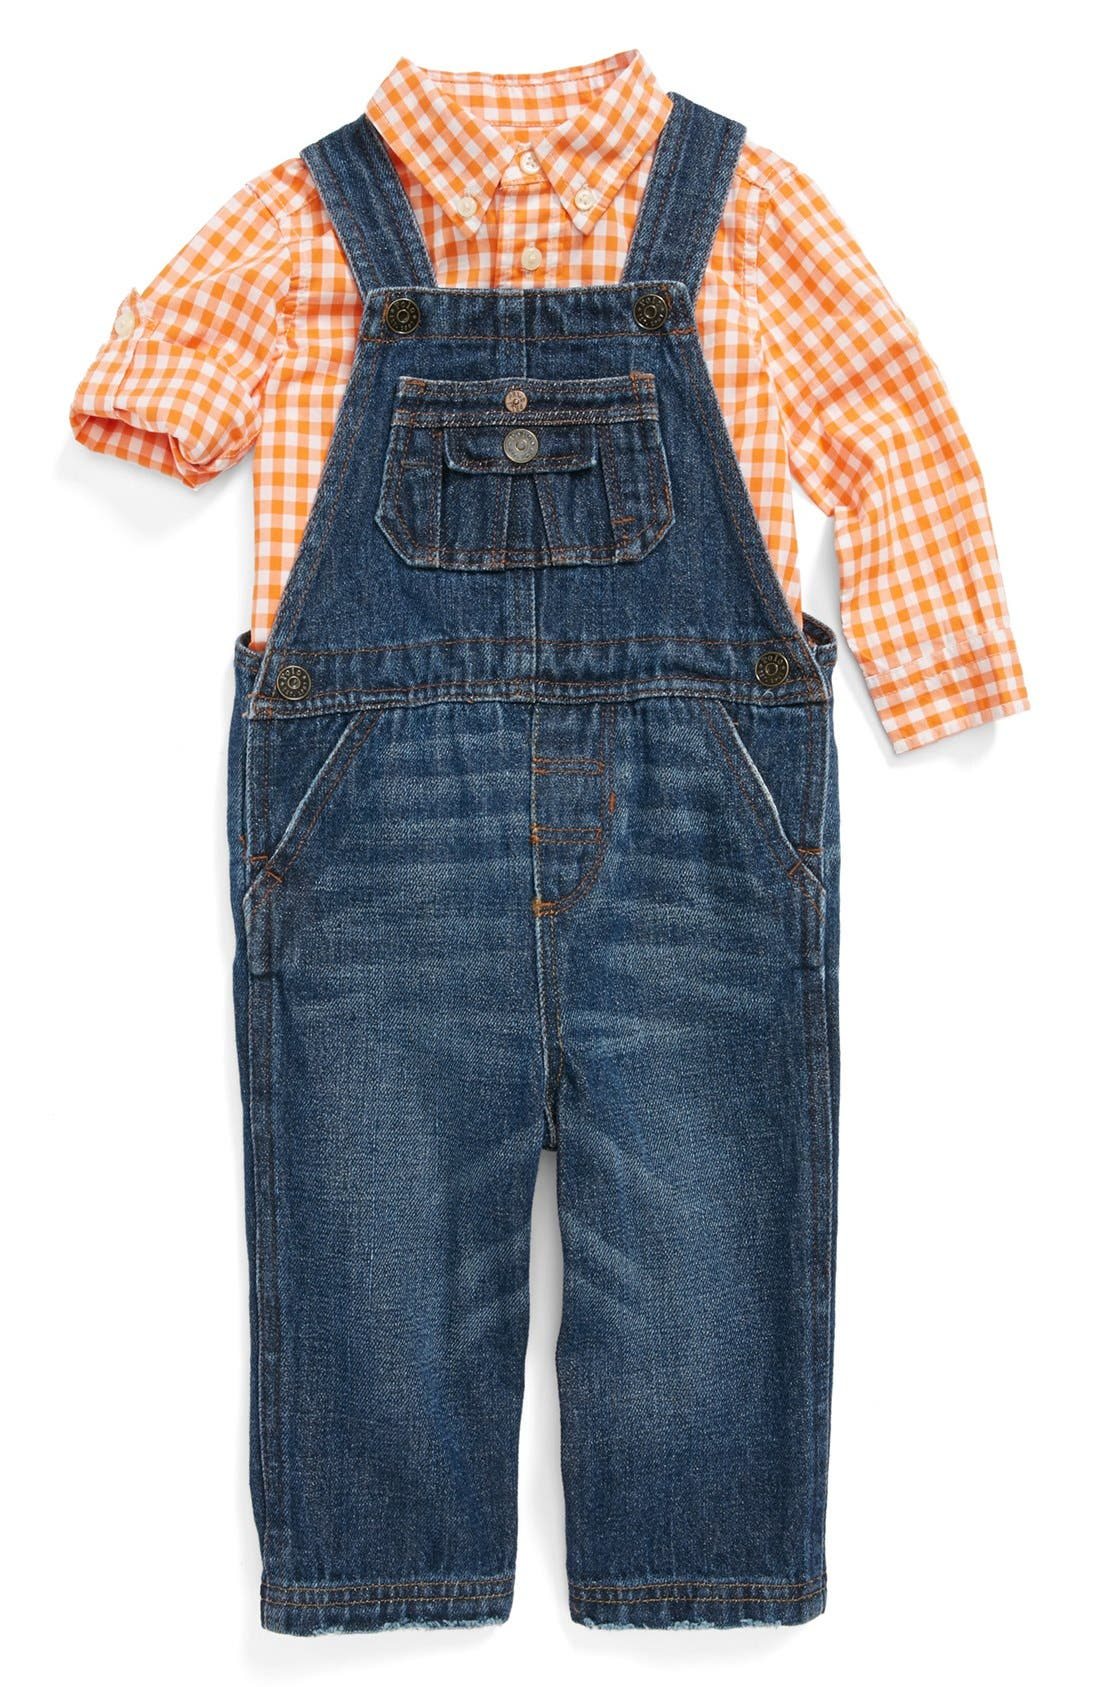 Alternate Image 1 Selected - Ralph Lauren Woven Check Shirt & Denim Overalls (Baby Boys)